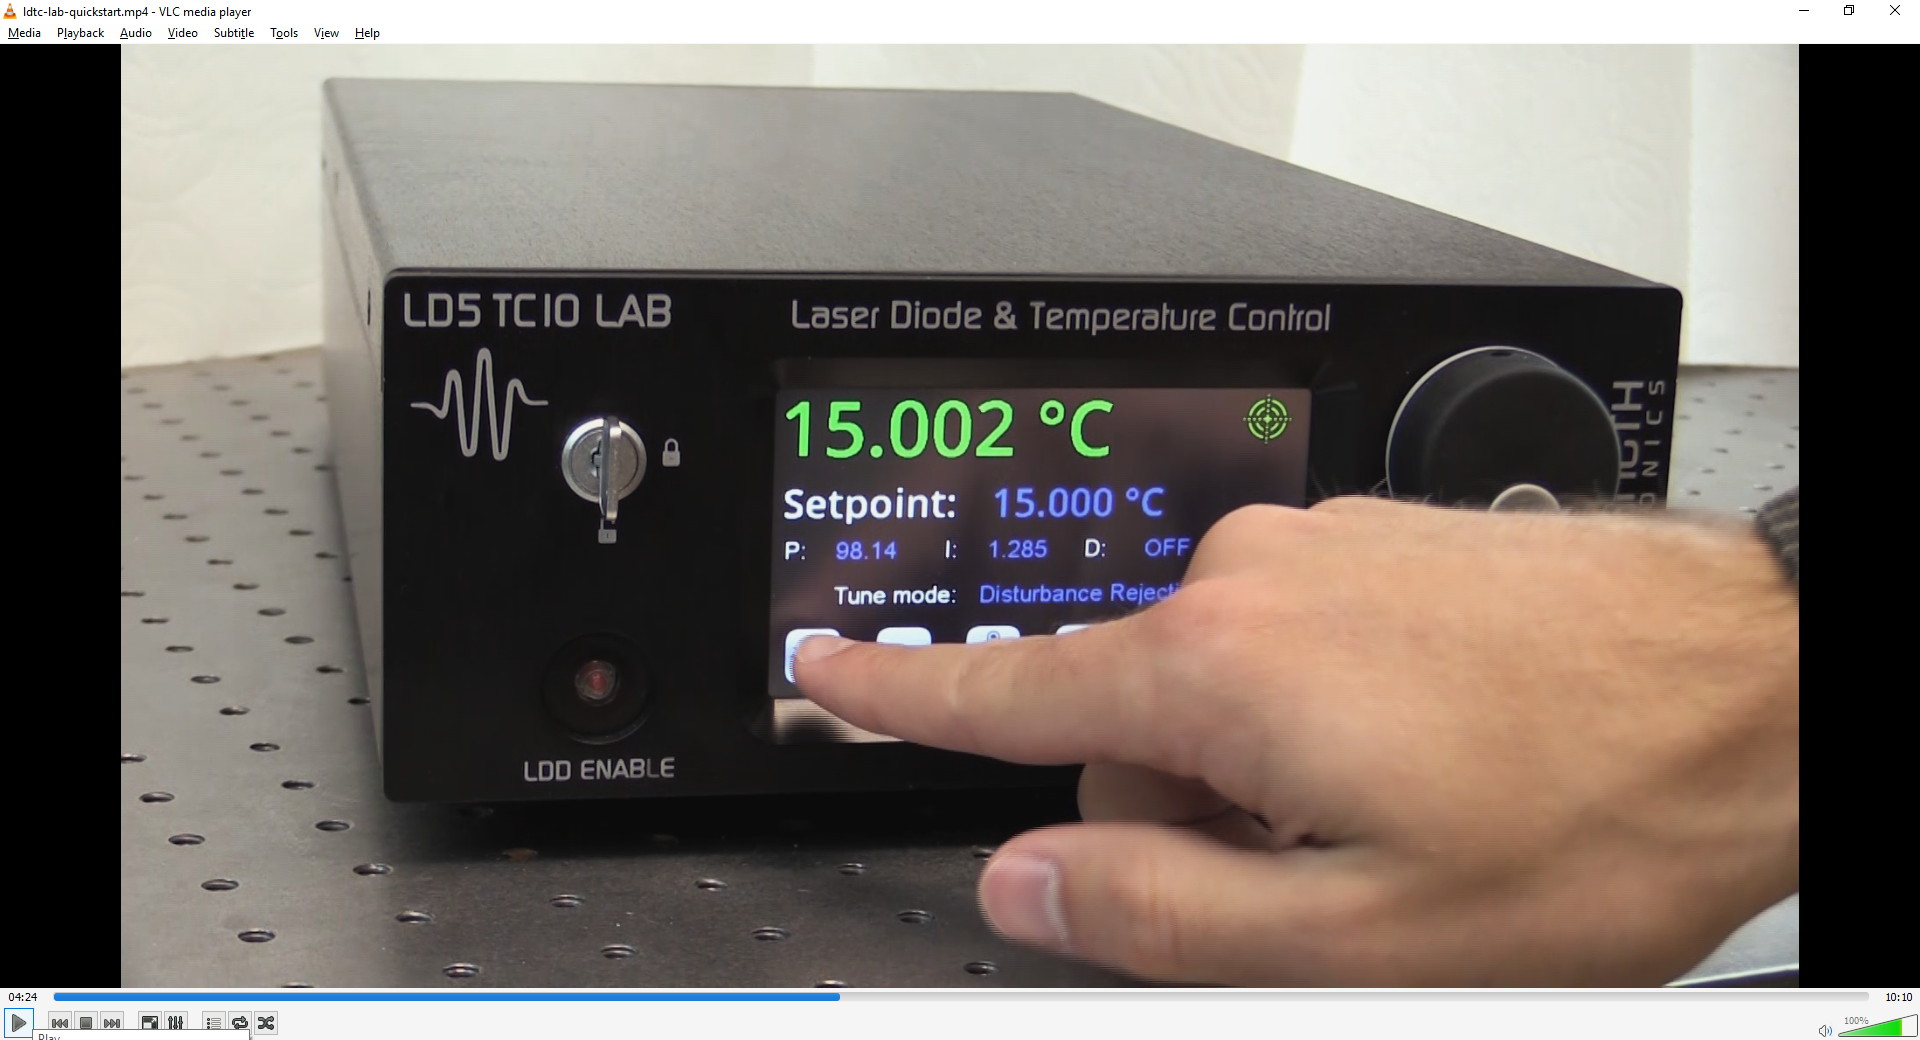 VIDEO: LDTC LAB Series Instrument Quick Start